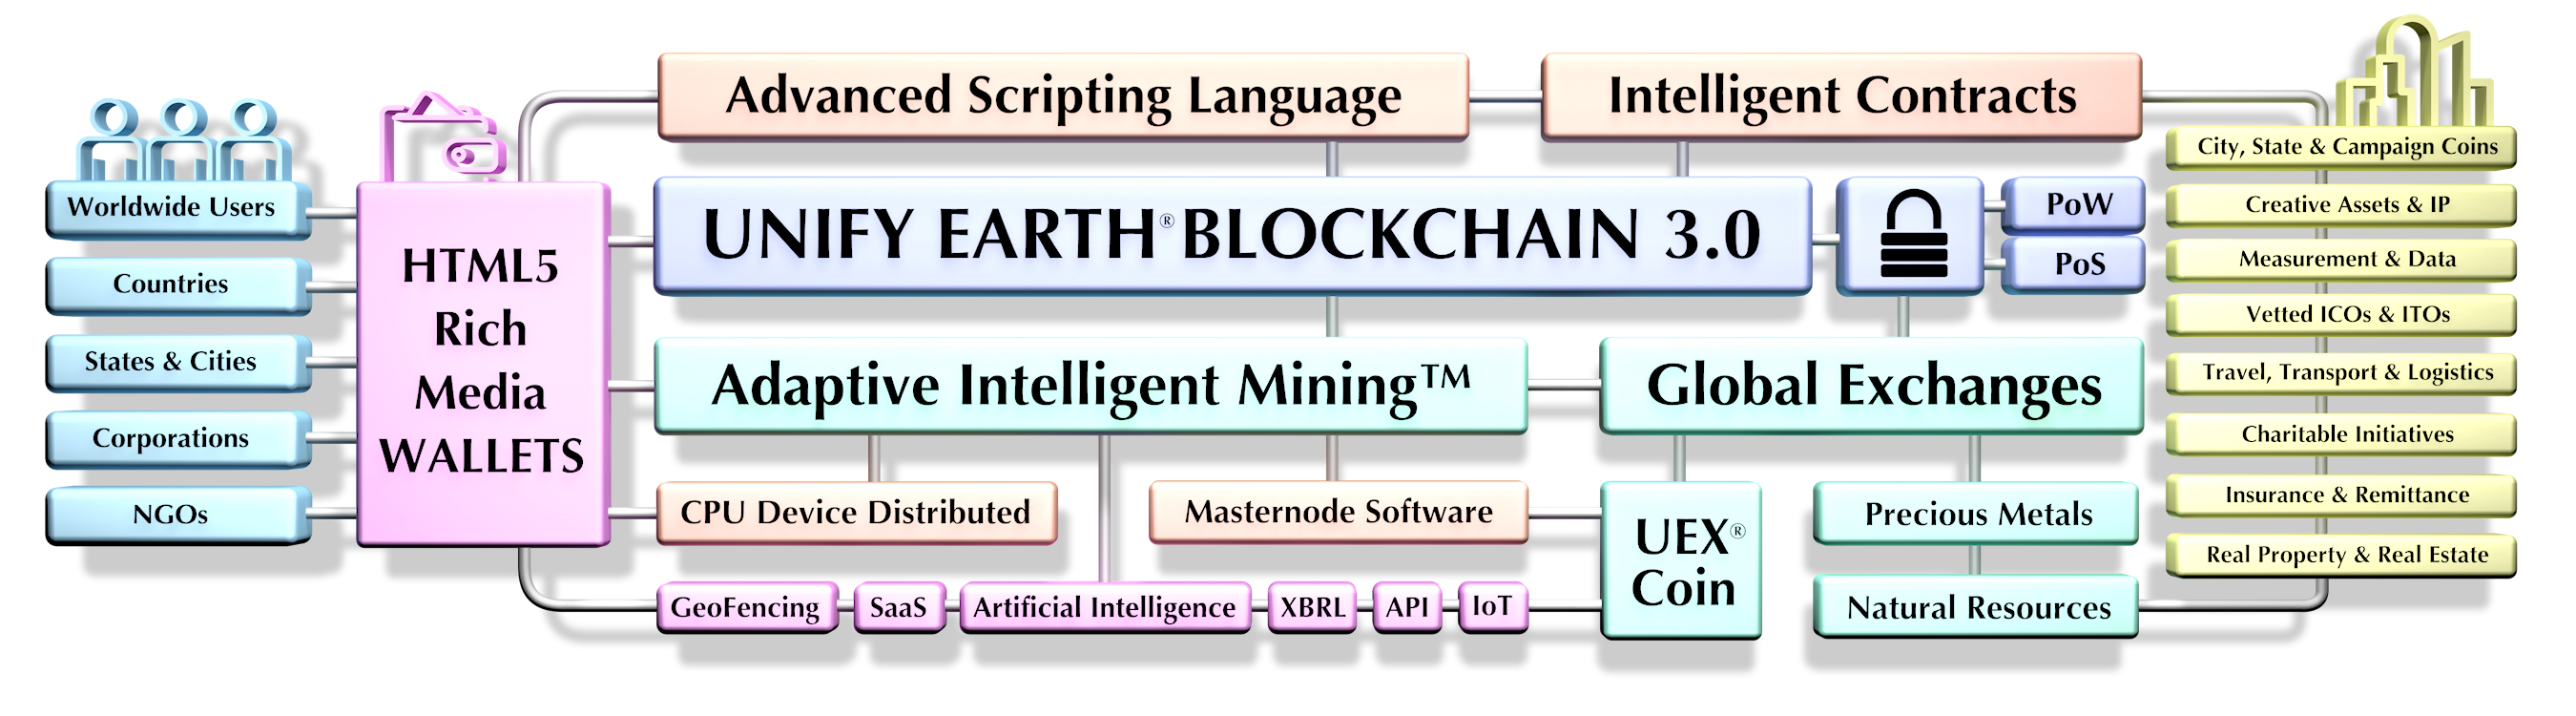 Unify Earth Blockchain Diagram